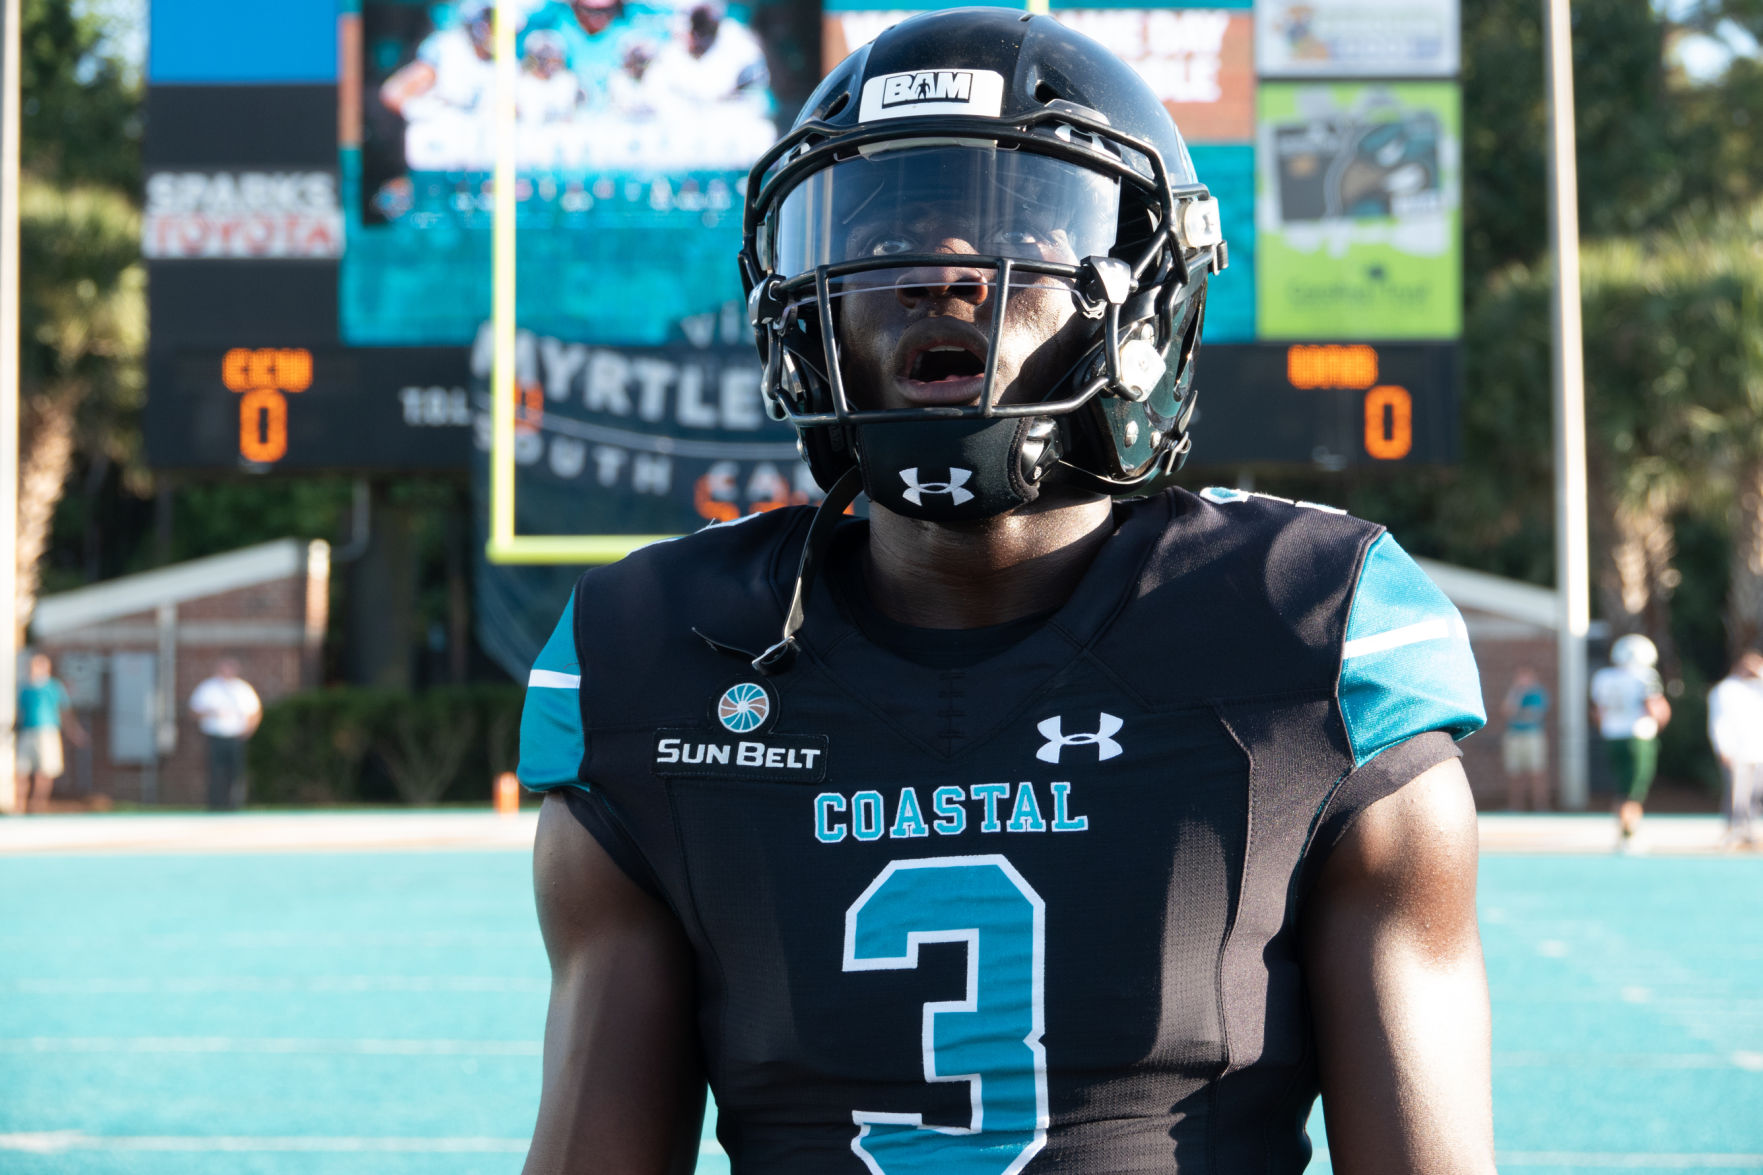 Resilient Coastal Carolina Football Team Stays Calm In Chaos Caused By Hurricane Florence Sports Postandcourier com